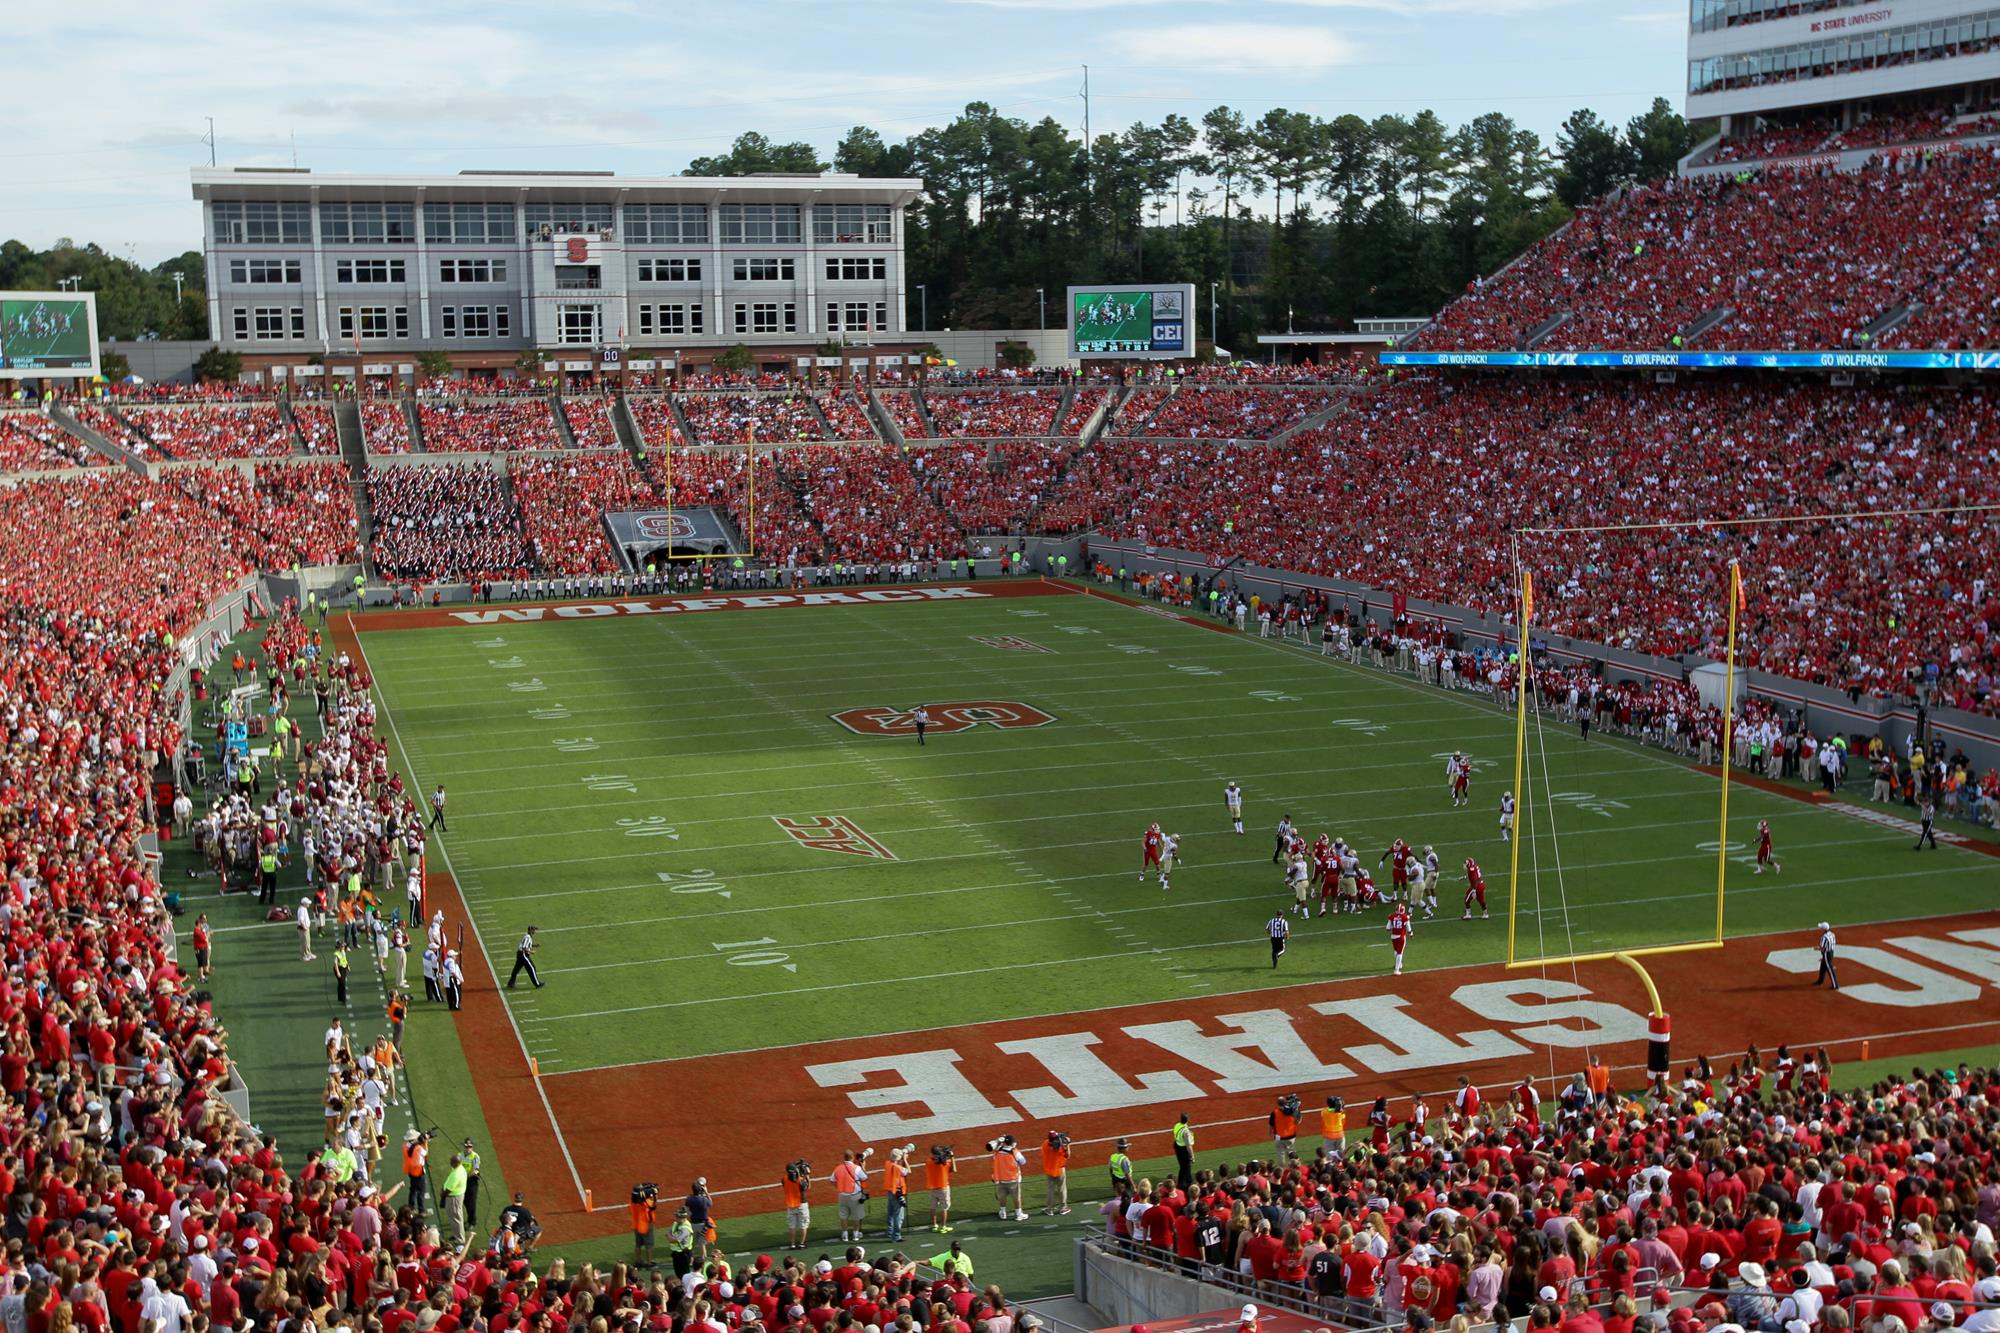 Carter Finley Stadium View Full Image